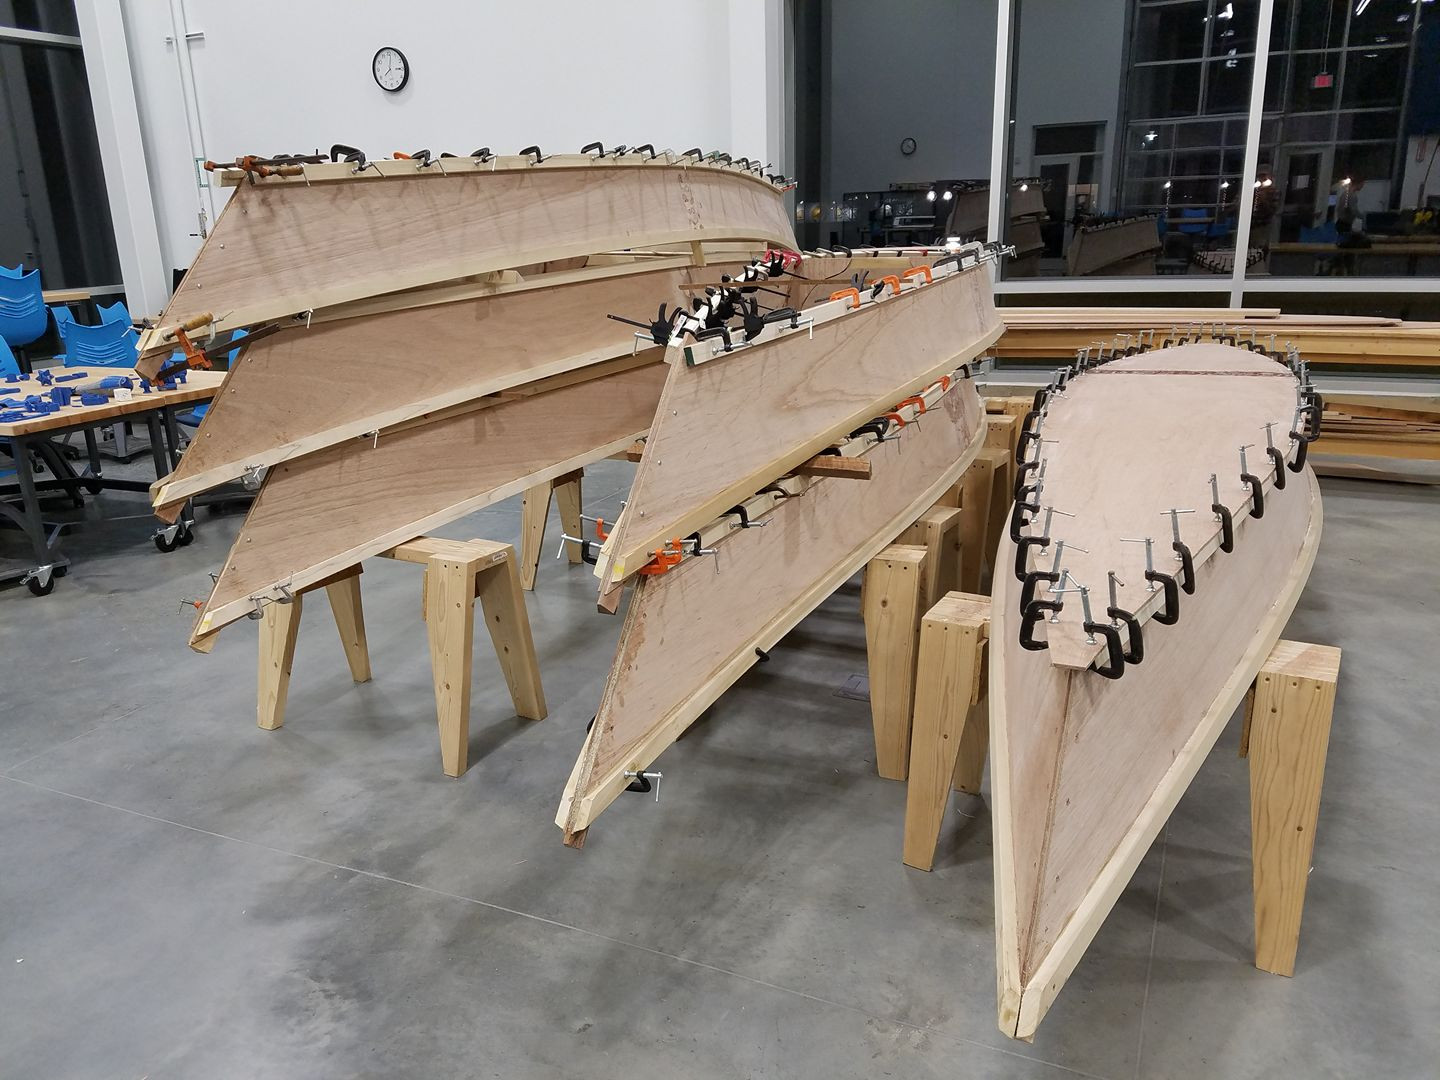 Canoes in process